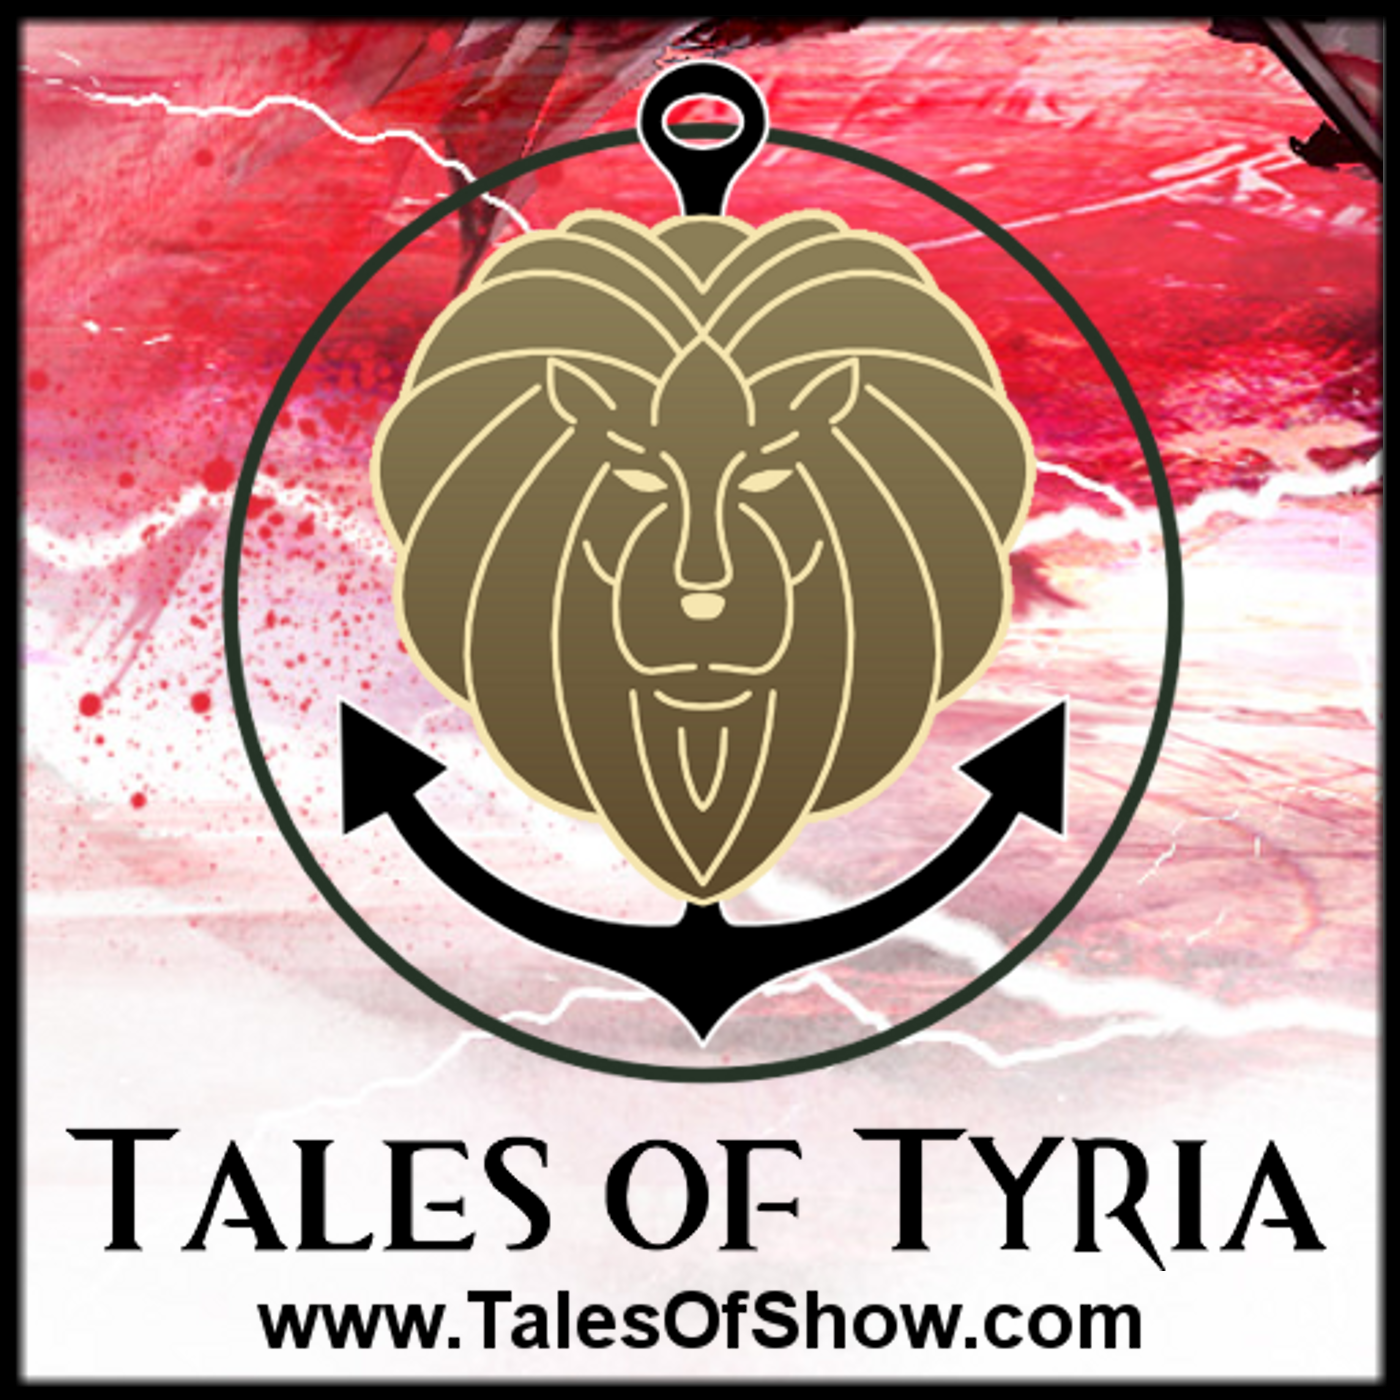 Tales of Tyria - Guild Wars 2 Podcast - The Sound Strategy Network